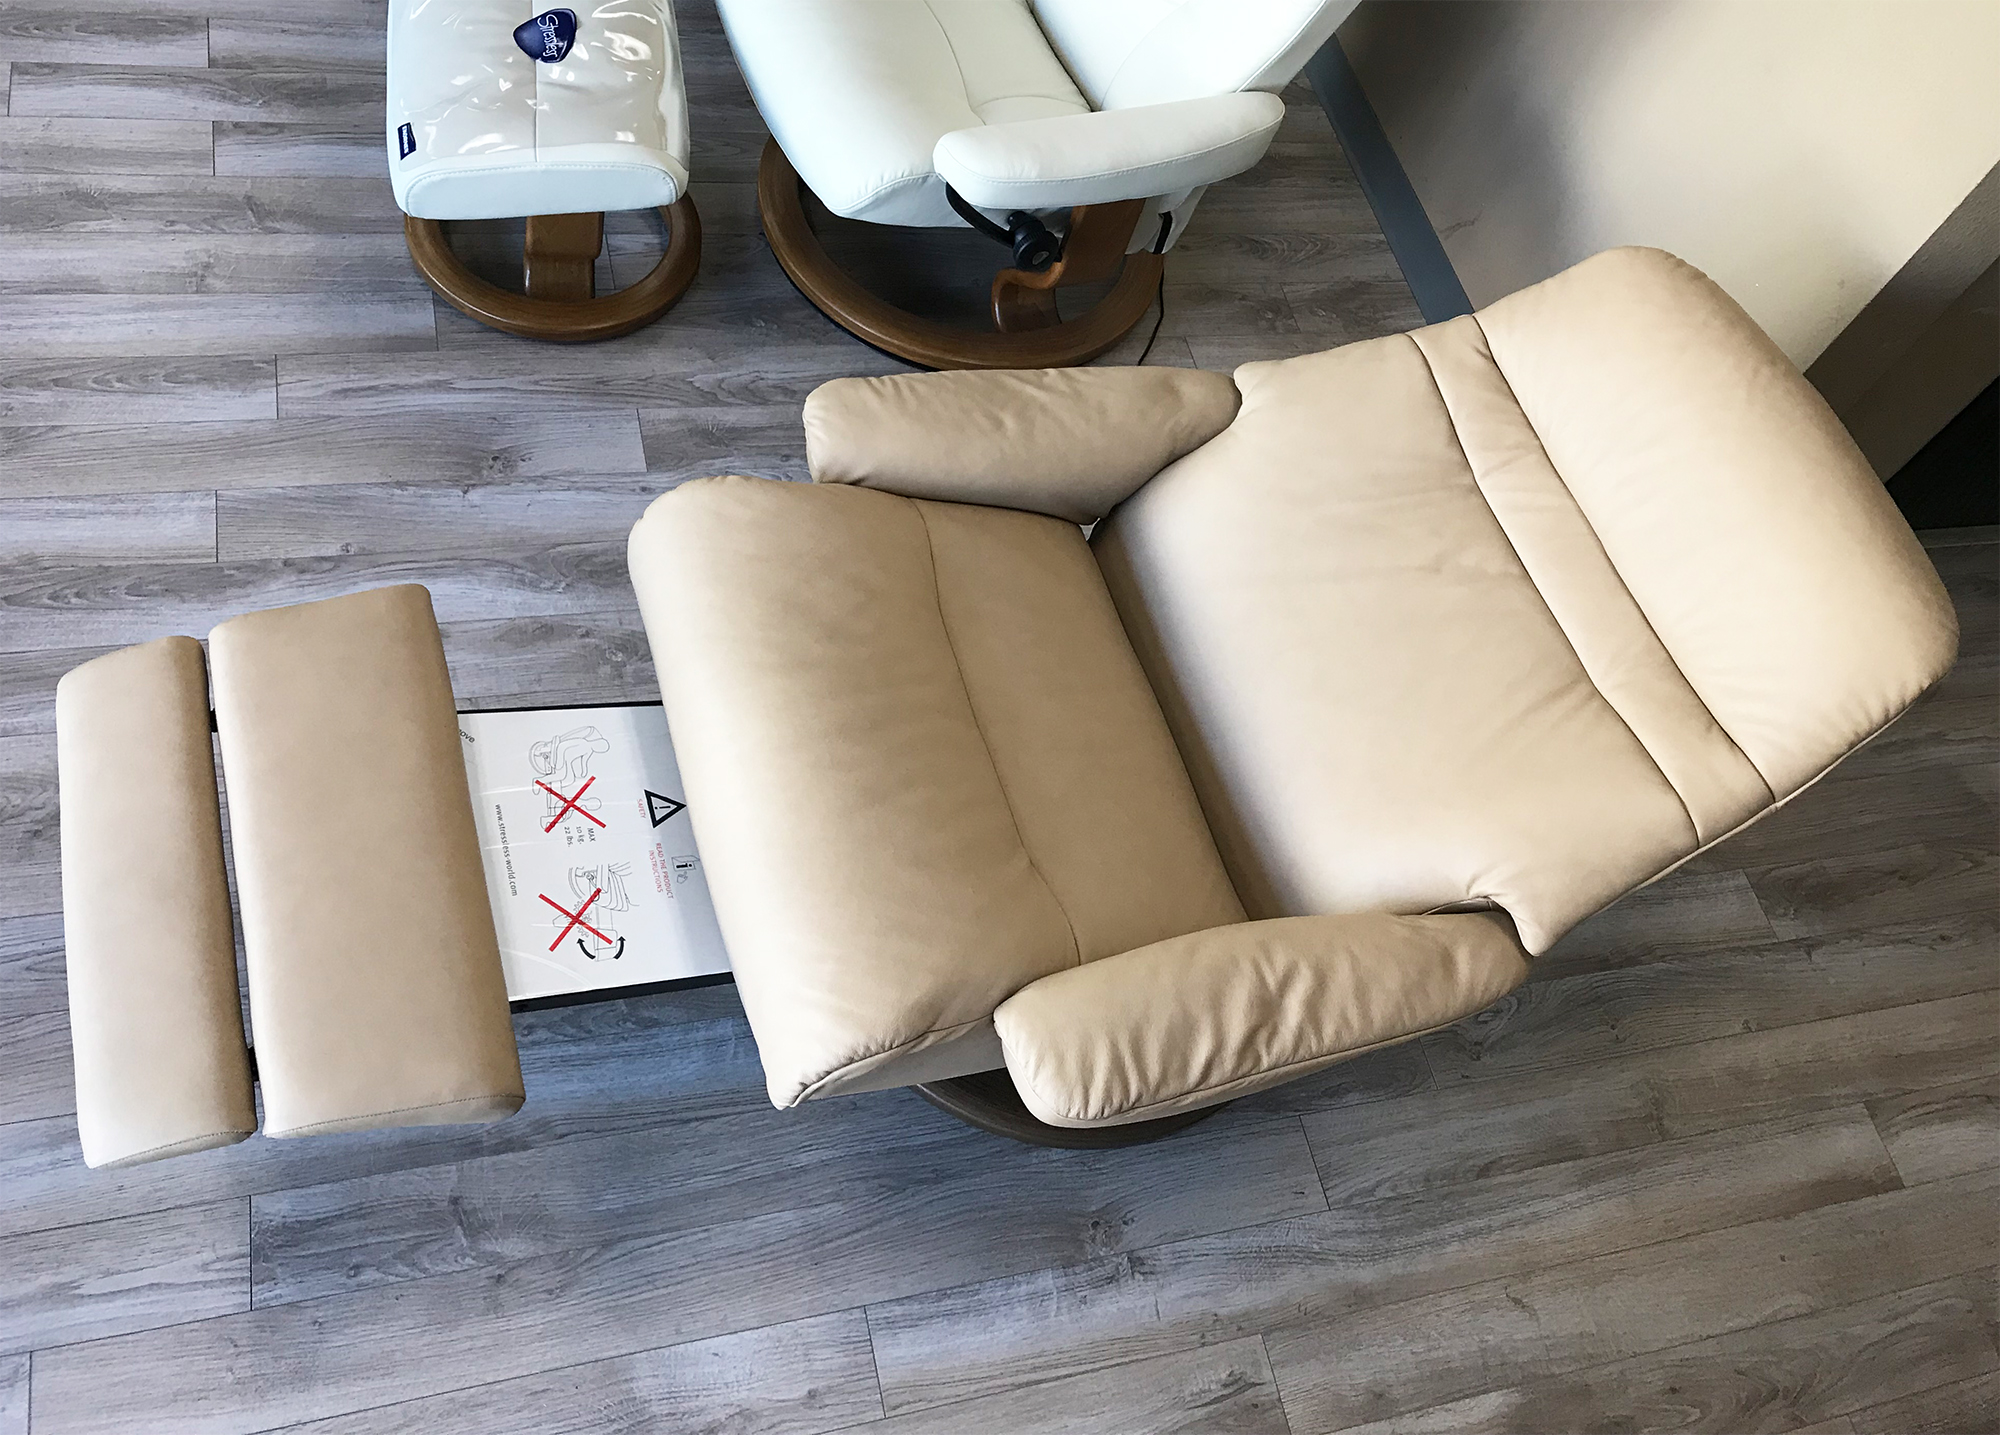 Stressless-world.com Stressless Sunrise Legcomfort Recliner Chair With Footrest In Paloma Sand Leather By Ekornes